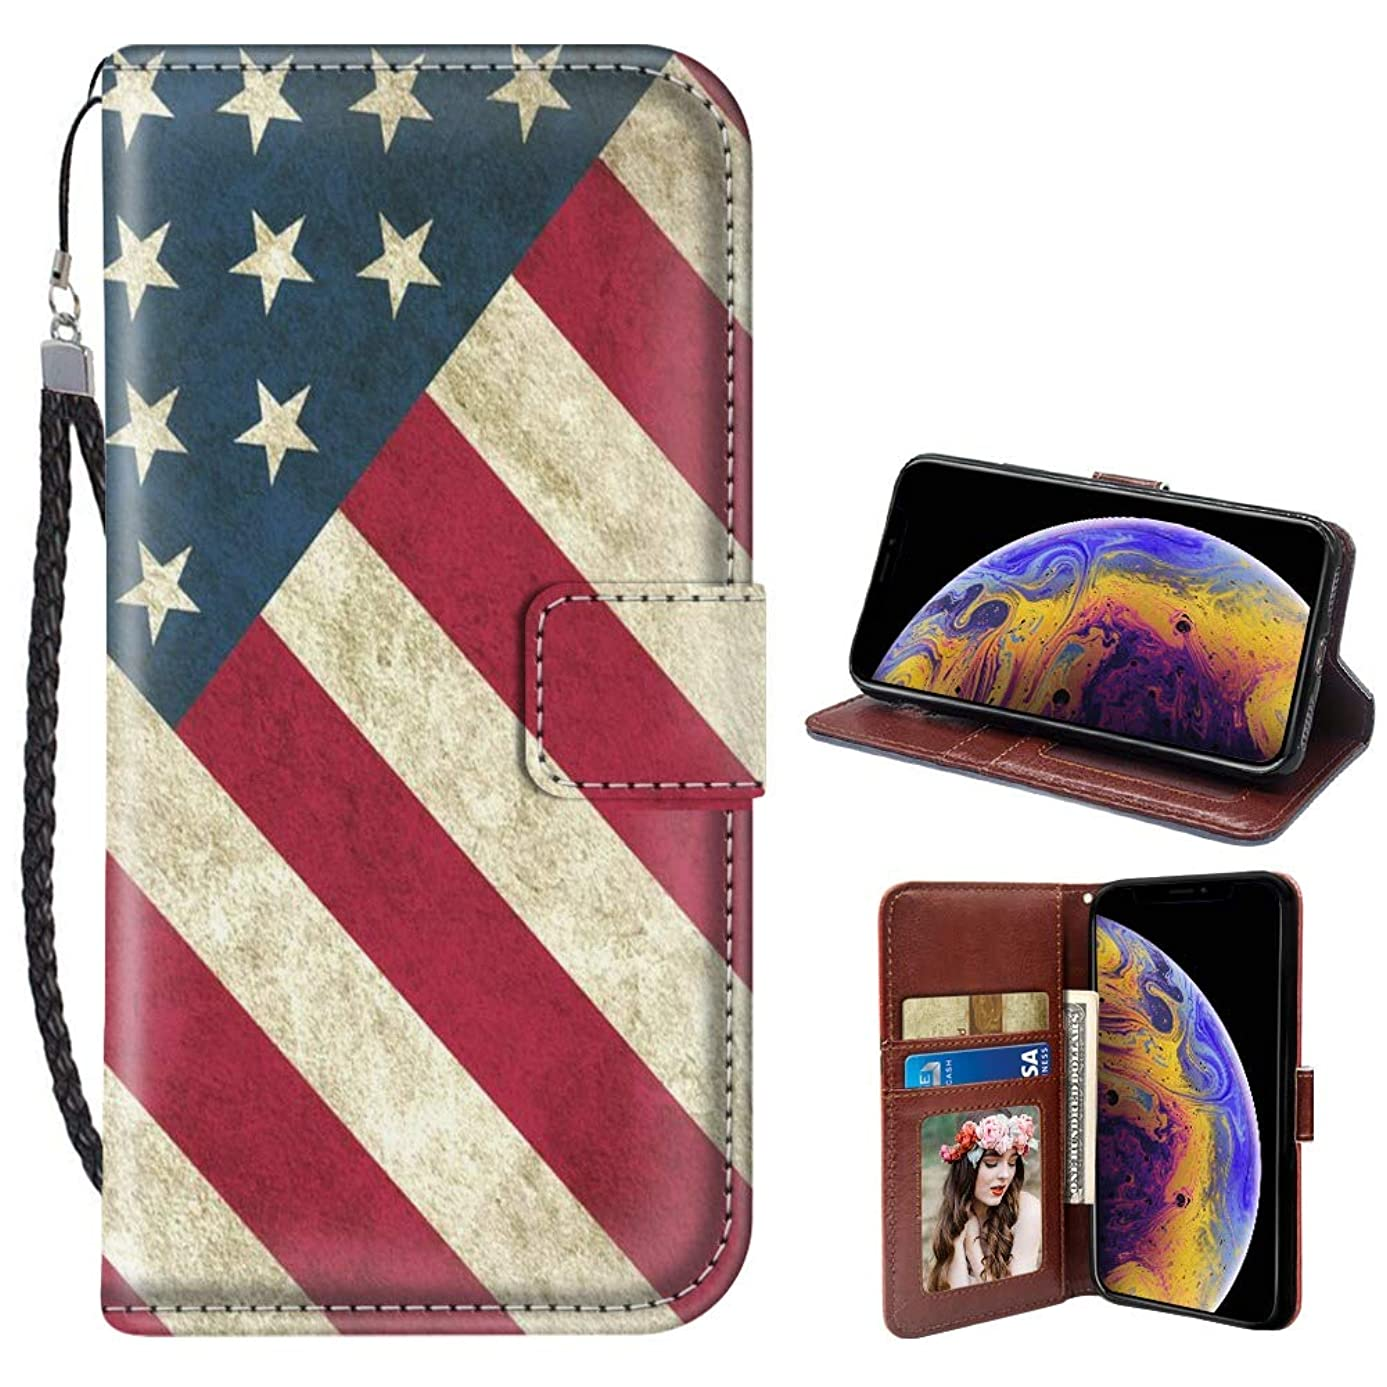 iPhone Xr American Flag Art Design Wallet Case Leather Cover Shock-Proof and Multi-Slots Flip Card Holder Pocket Case for iPhone Xr LingHan